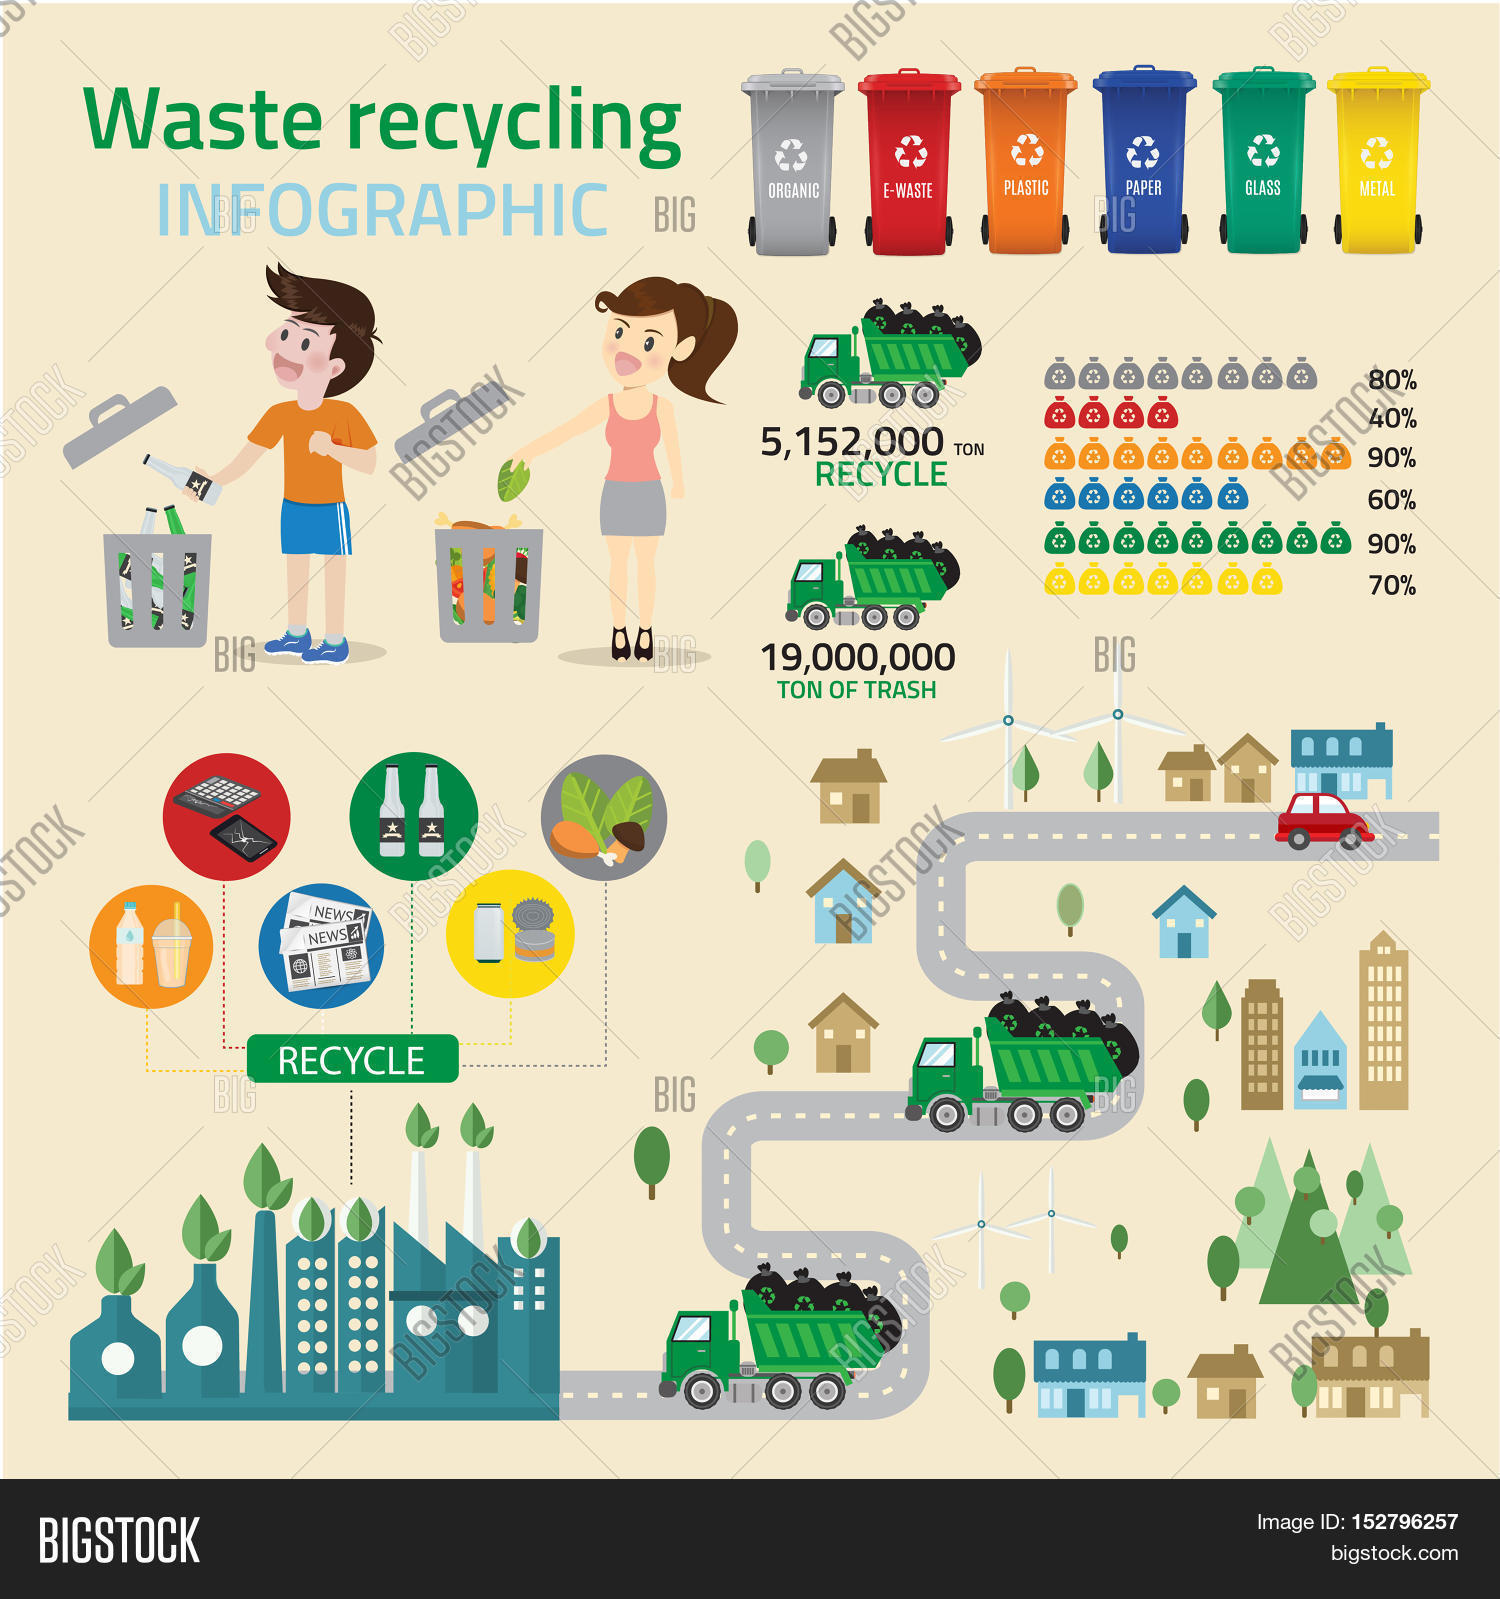 Waste Recycing Image Amp Photo Free Trial